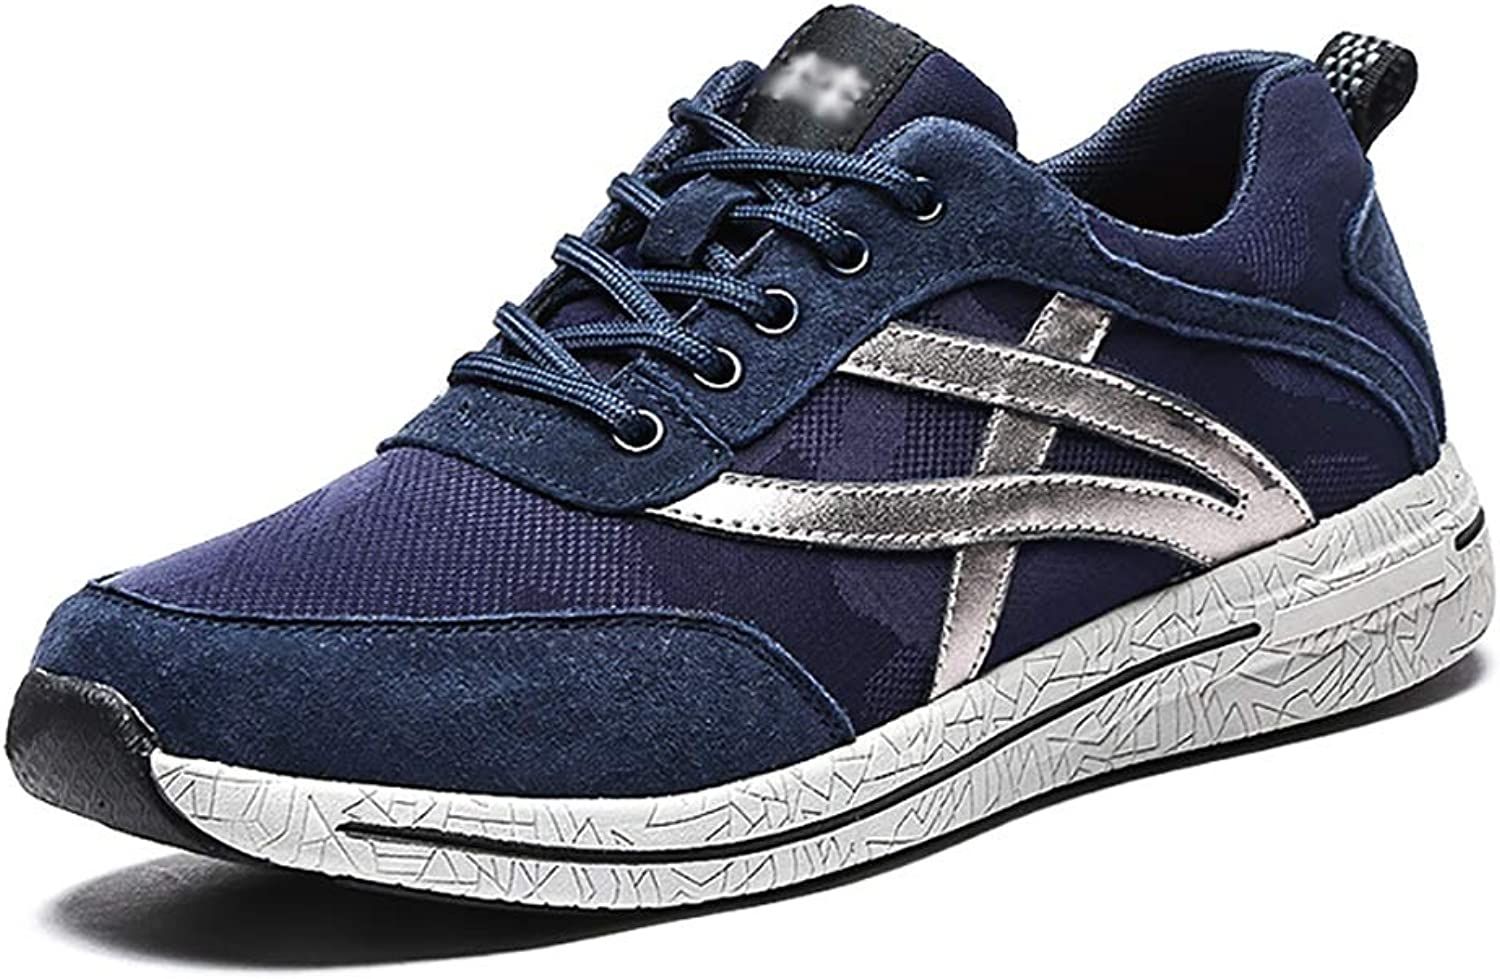 GAIQIN Casual shoes Men's shoes Spring Sports shoes Mesh Running shoes Breathable Casual shoes (color   bluee, Size   43)